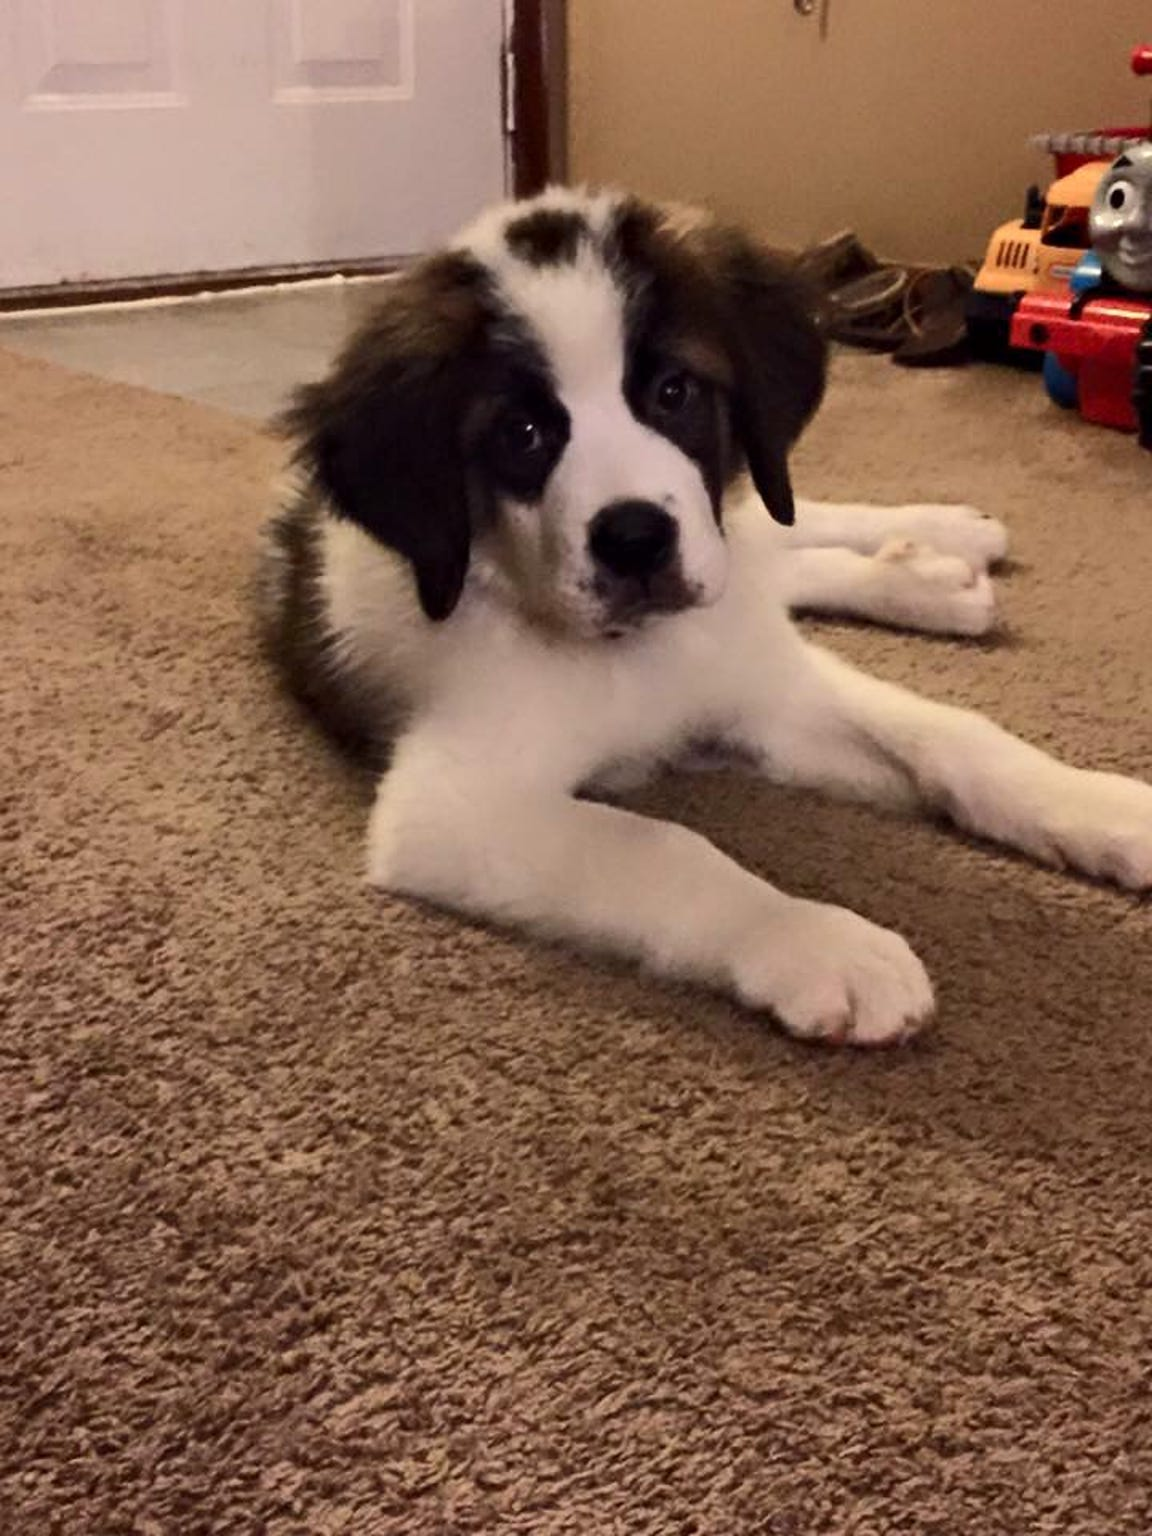 Cash the puppy St. Bernard is pictured in his home